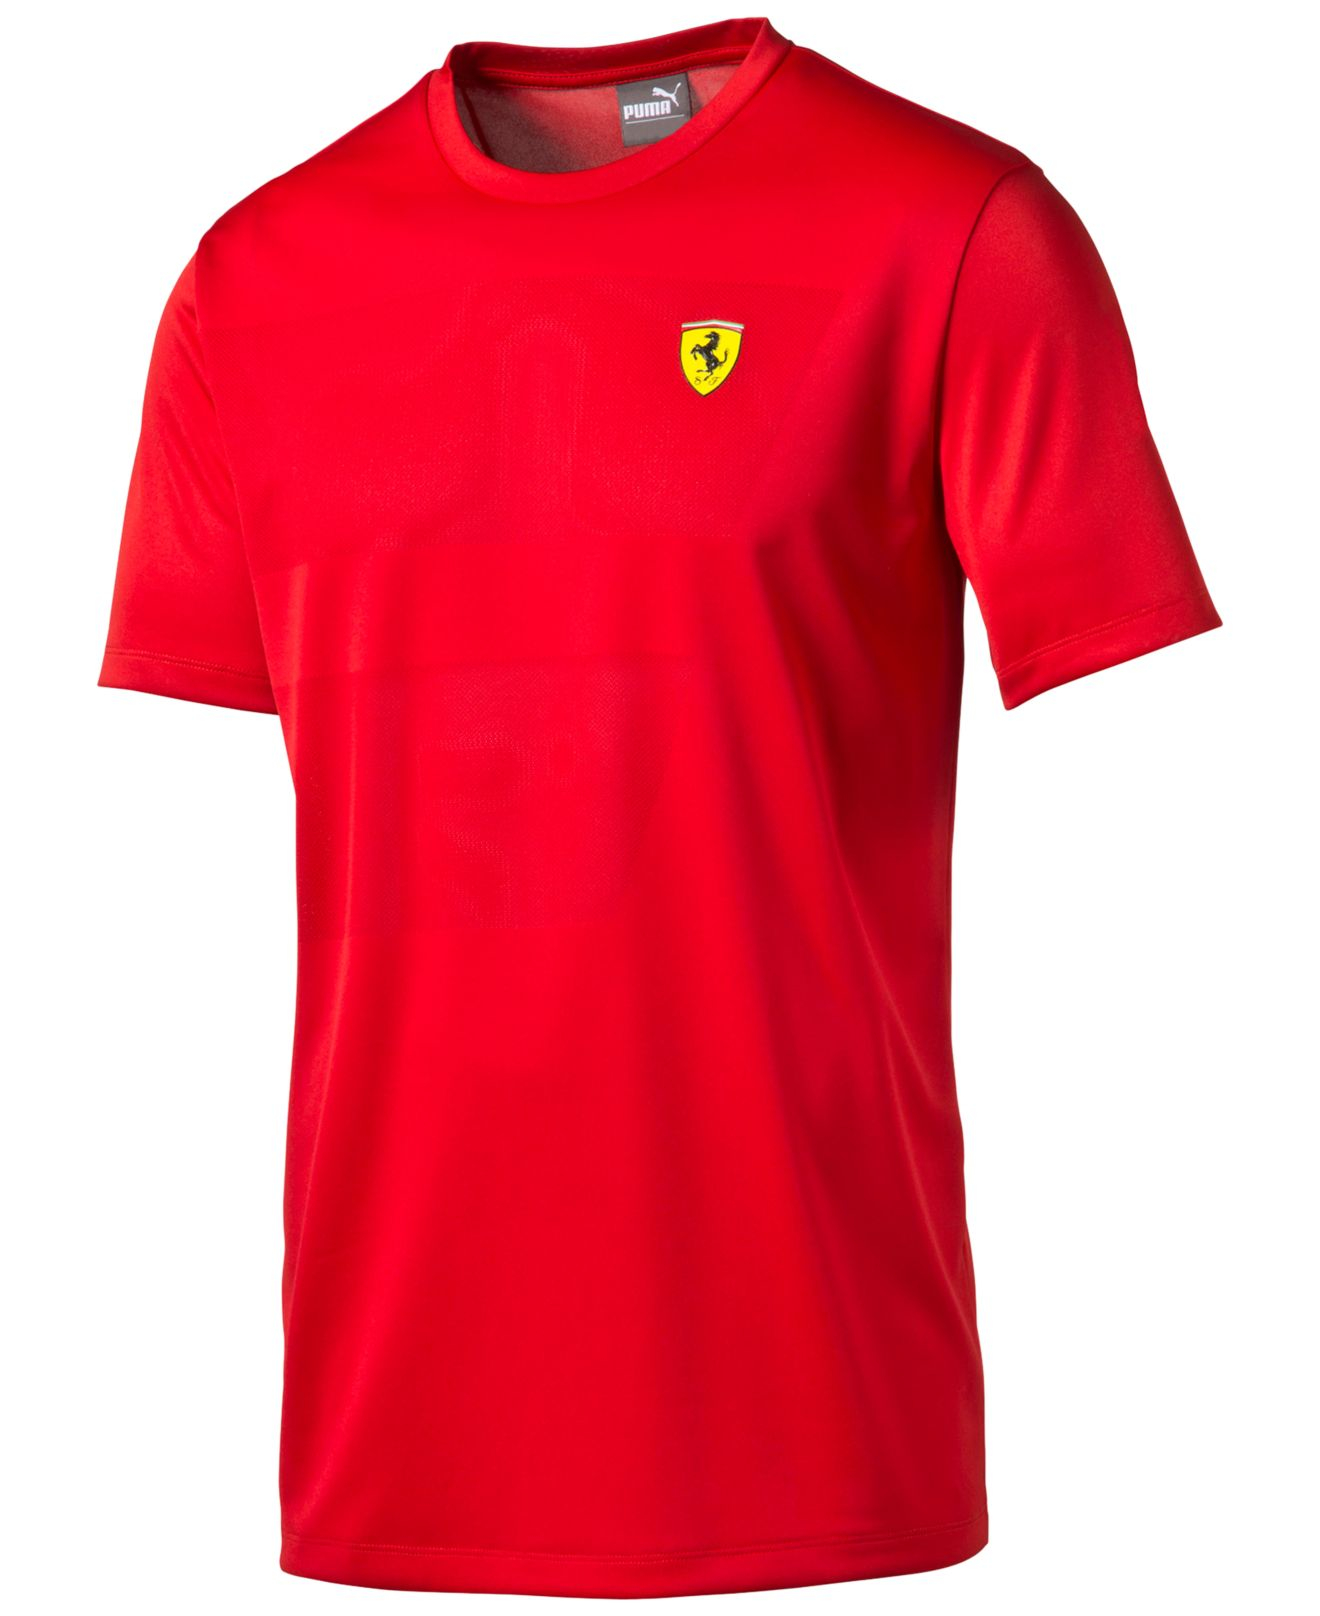 Puma Men S Ferrari T Shirt In Red For Men Save 25 Lyst